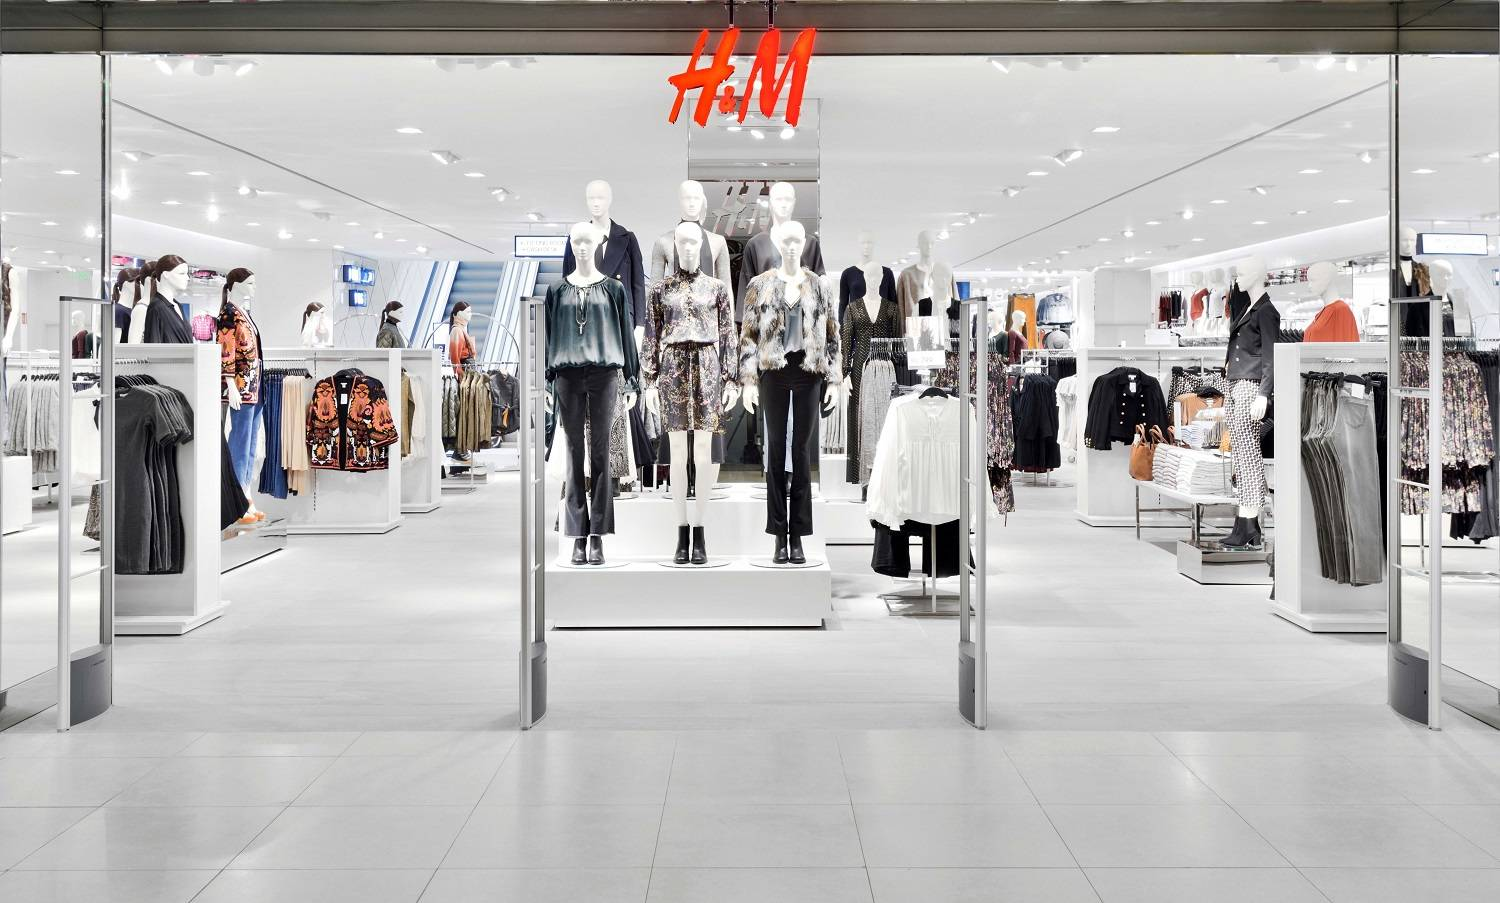 H&M to open new store in Delhi's Connaught Place, Retail News, ET ...